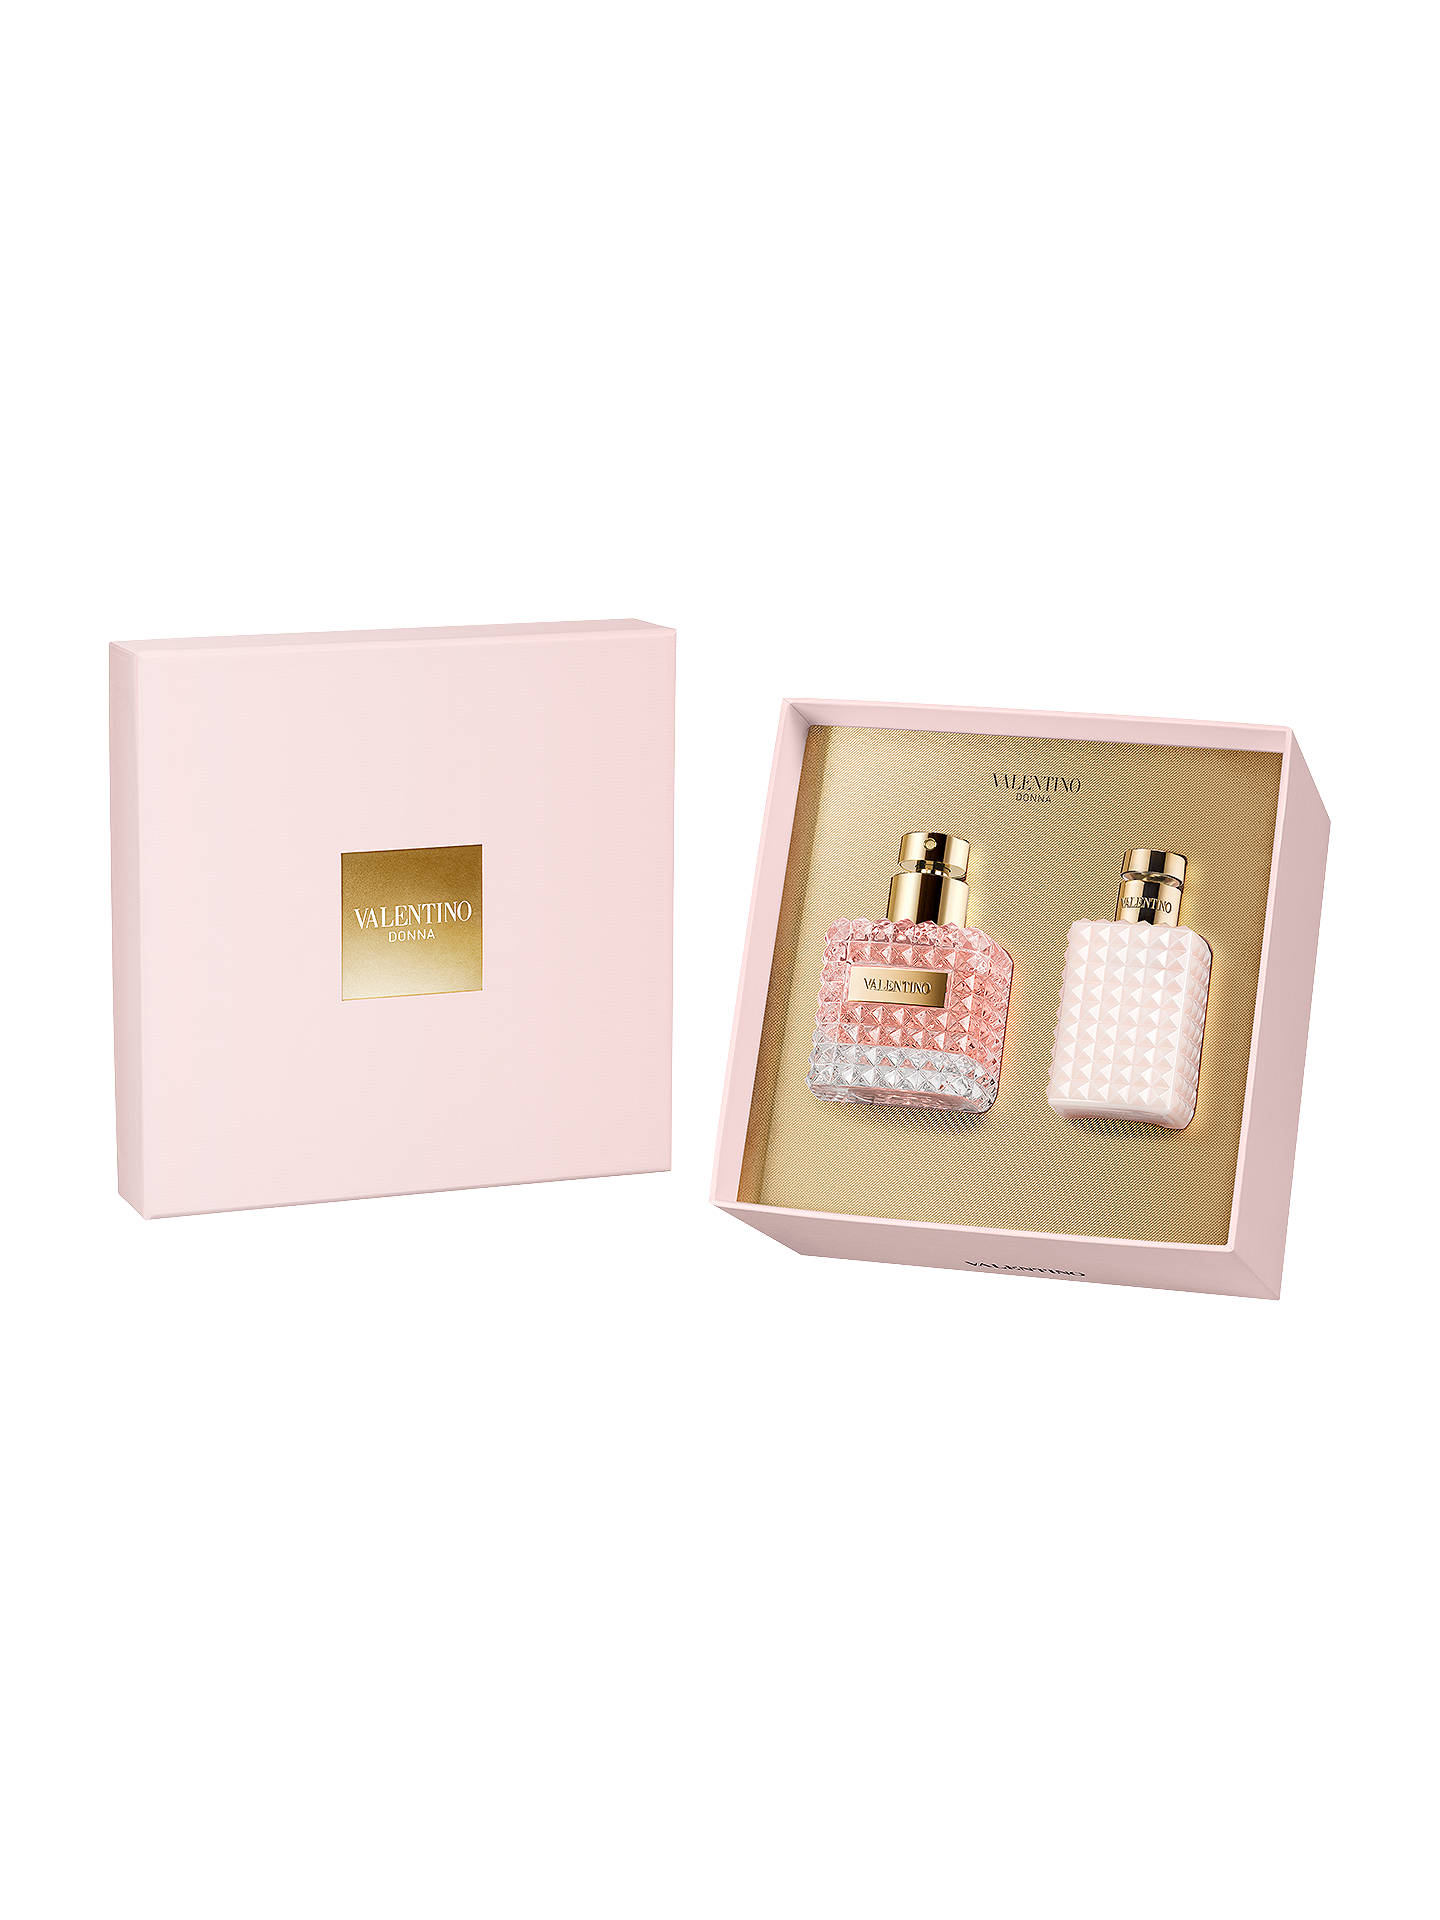 BuyValentino Donna 50ml Eau de Parfum Fragrance Gift Set Online at johnlewis.com